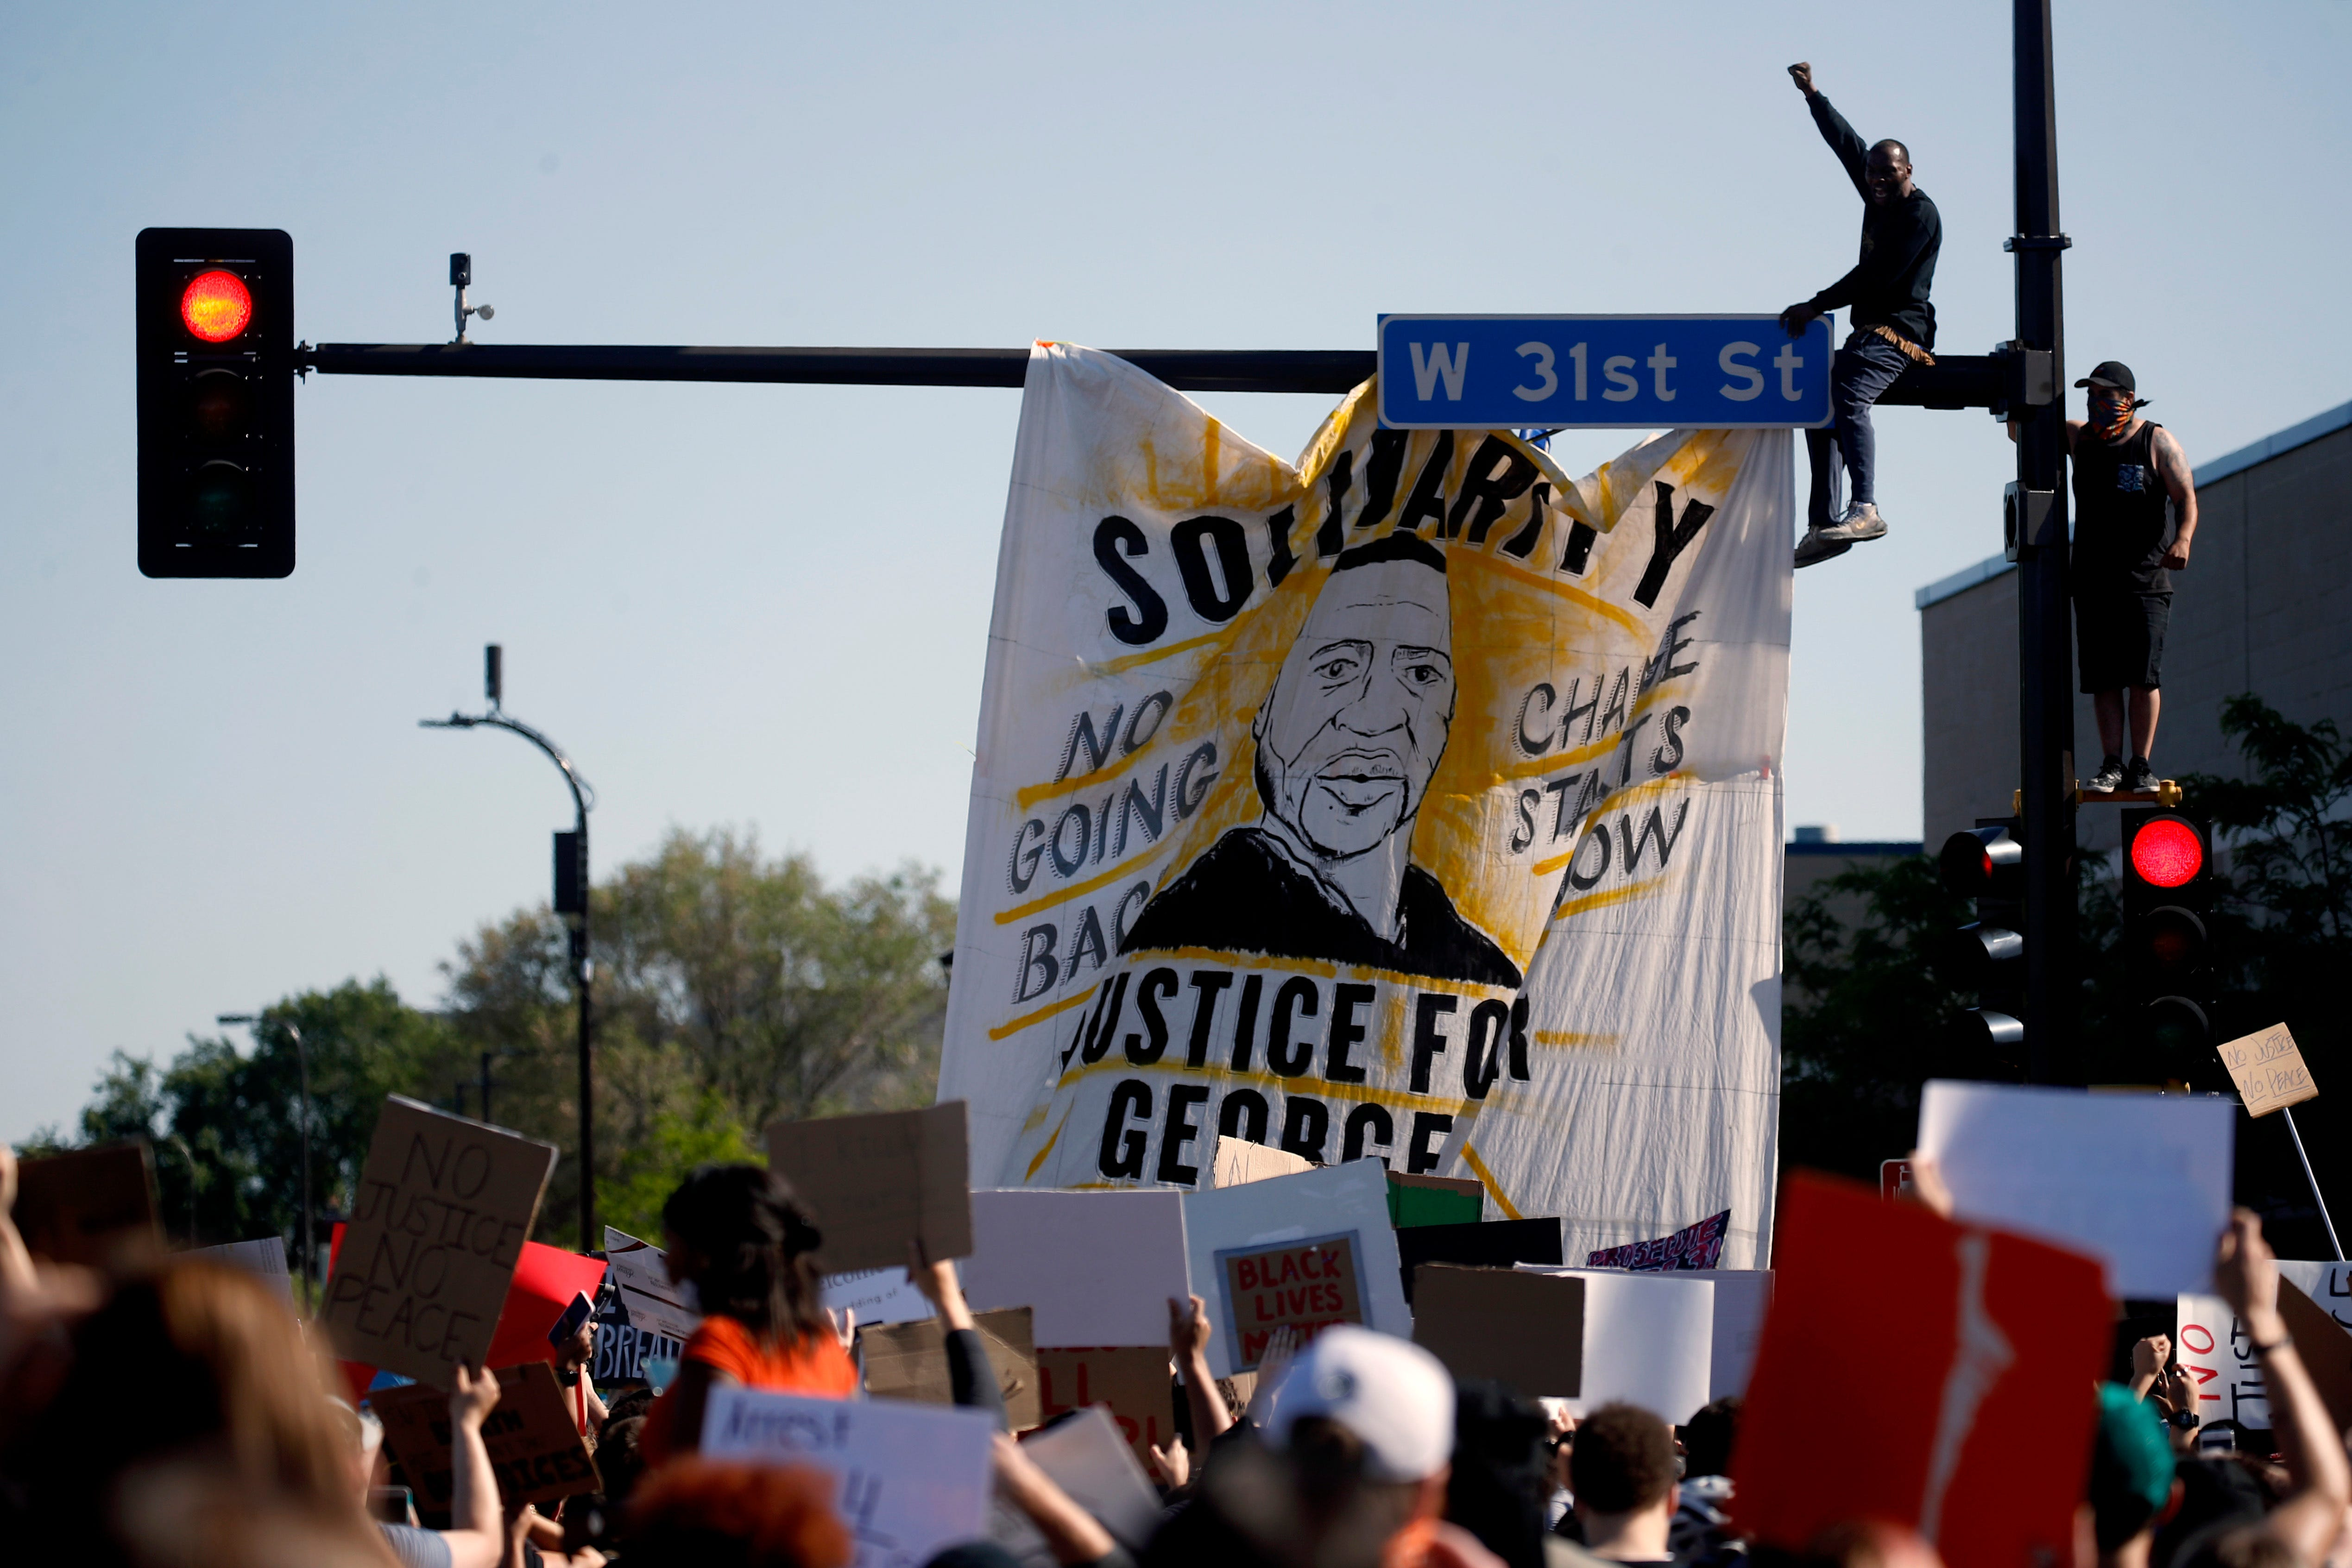 Fires, arrests, curfews, confrontations: George Floyd protests continue nationwide